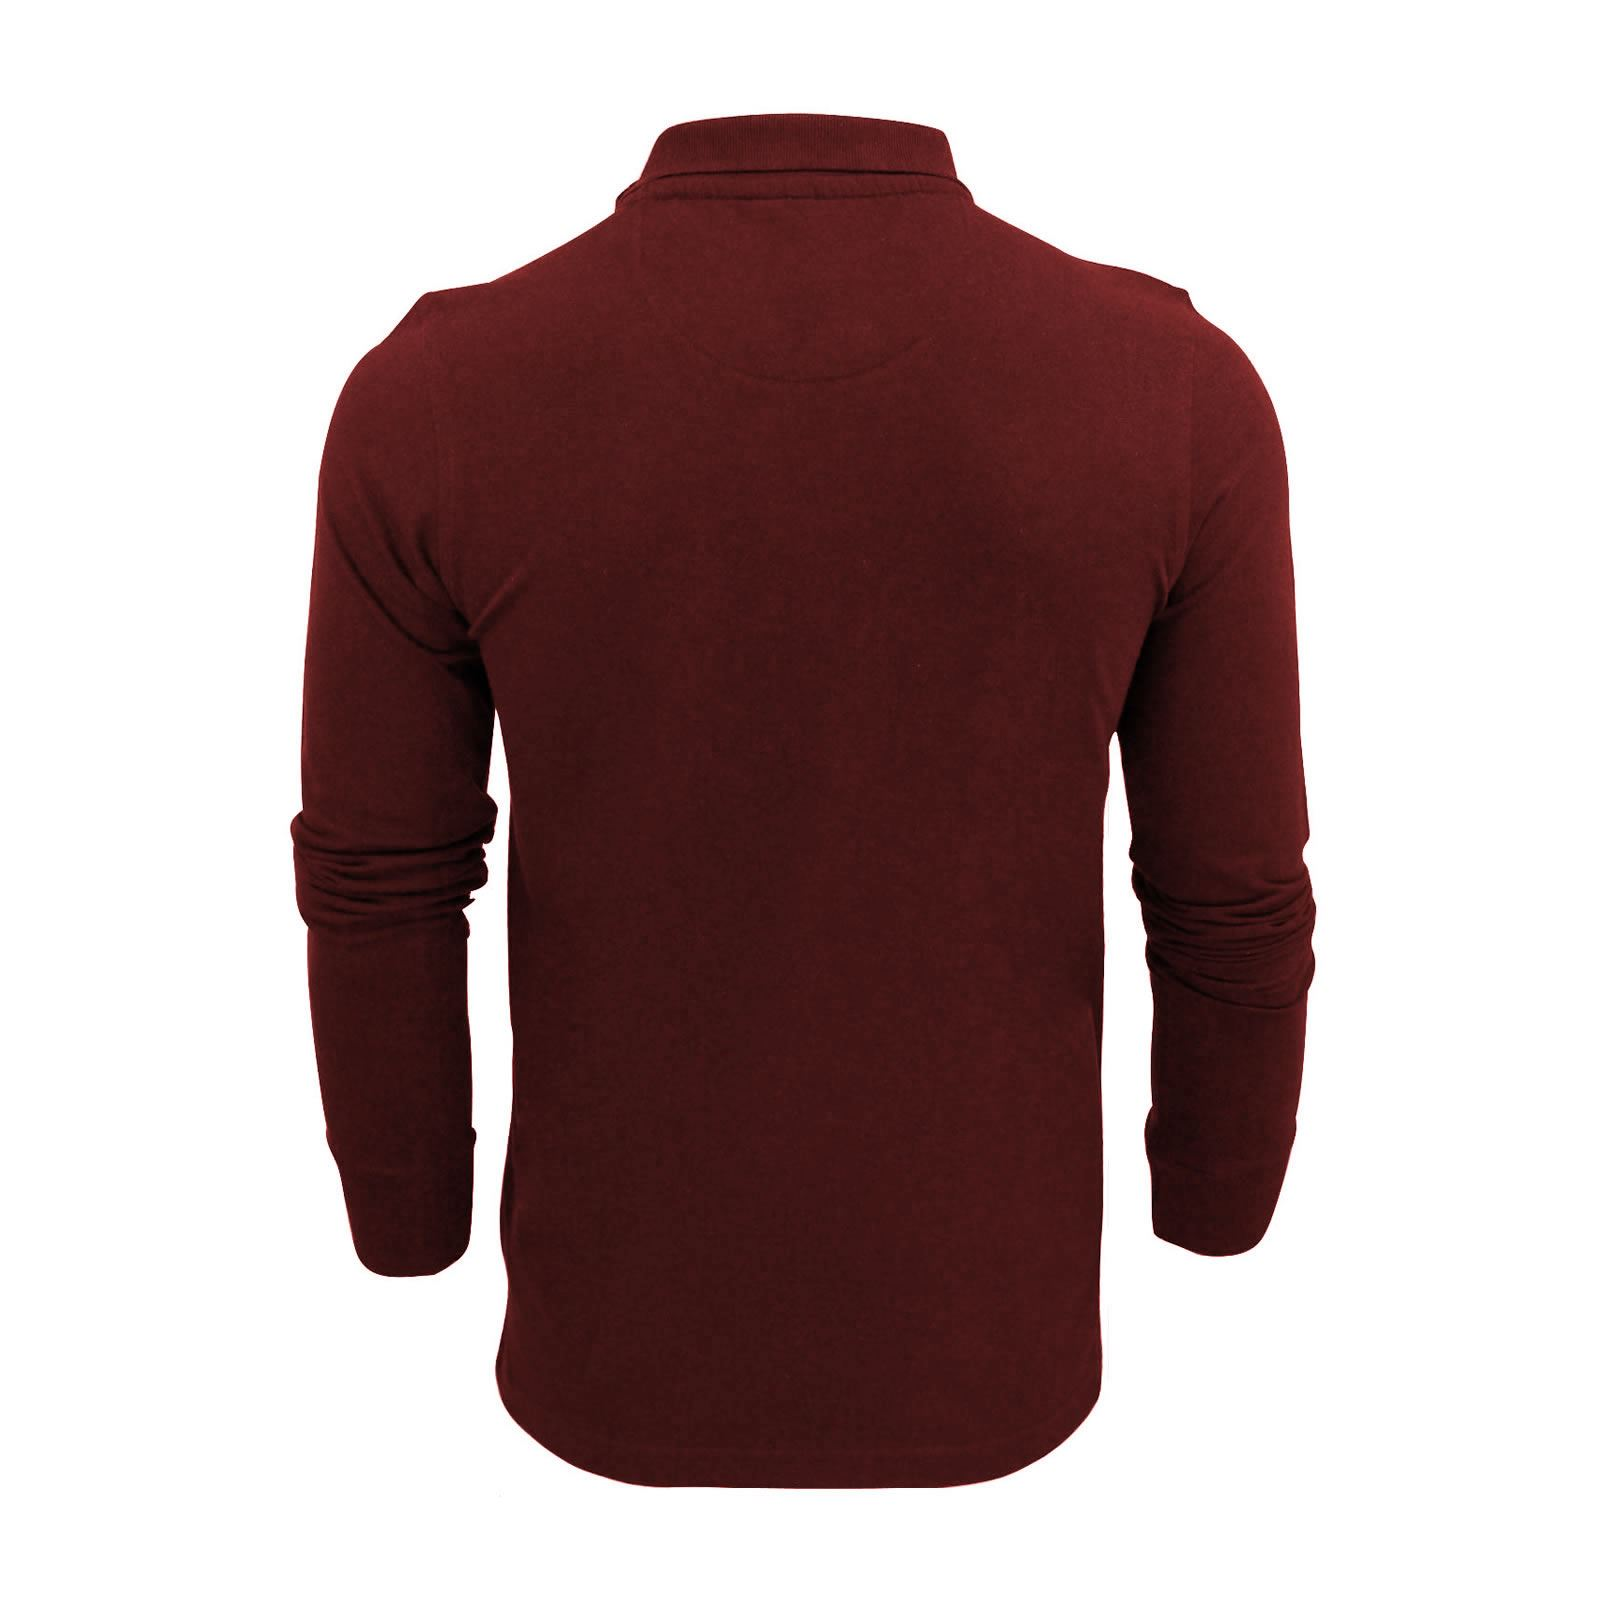 Mens-Polo-T-Shirt-Brave-Soul-Lincoln-Long-Sleeve-Cotton-Pique-Casual-Top thumbnail 23